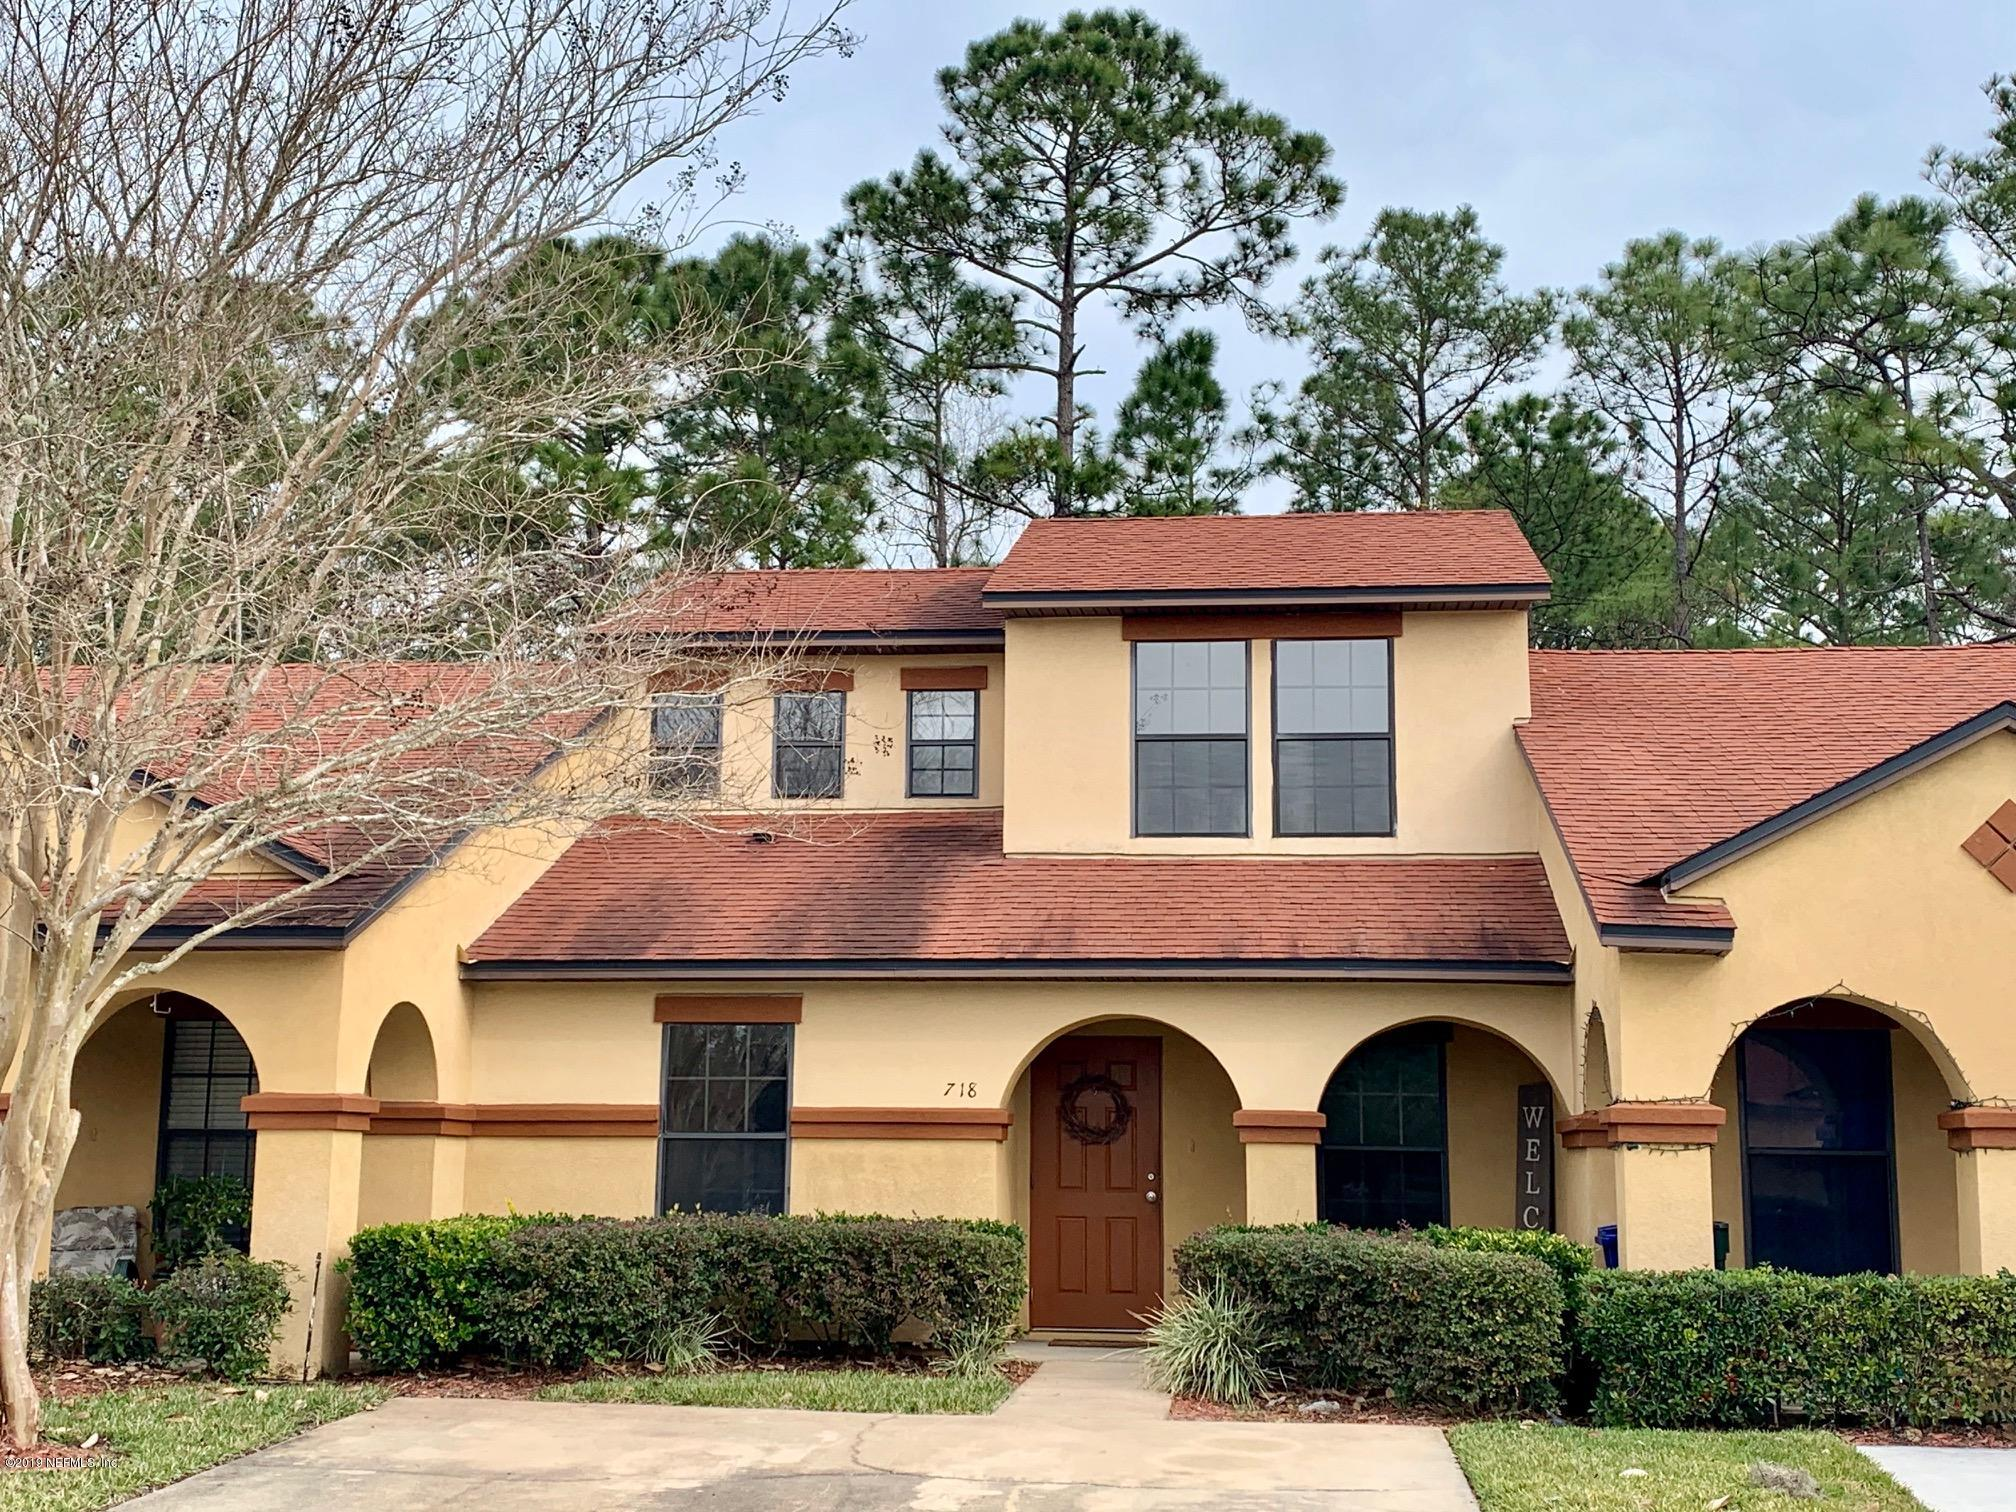 718 GINGER MILL, ST JOHNS, FLORIDA 32259, 3 Bedrooms Bedrooms, ,2 BathroomsBathrooms,Residential - townhome,For sale,GINGER MILL,974900